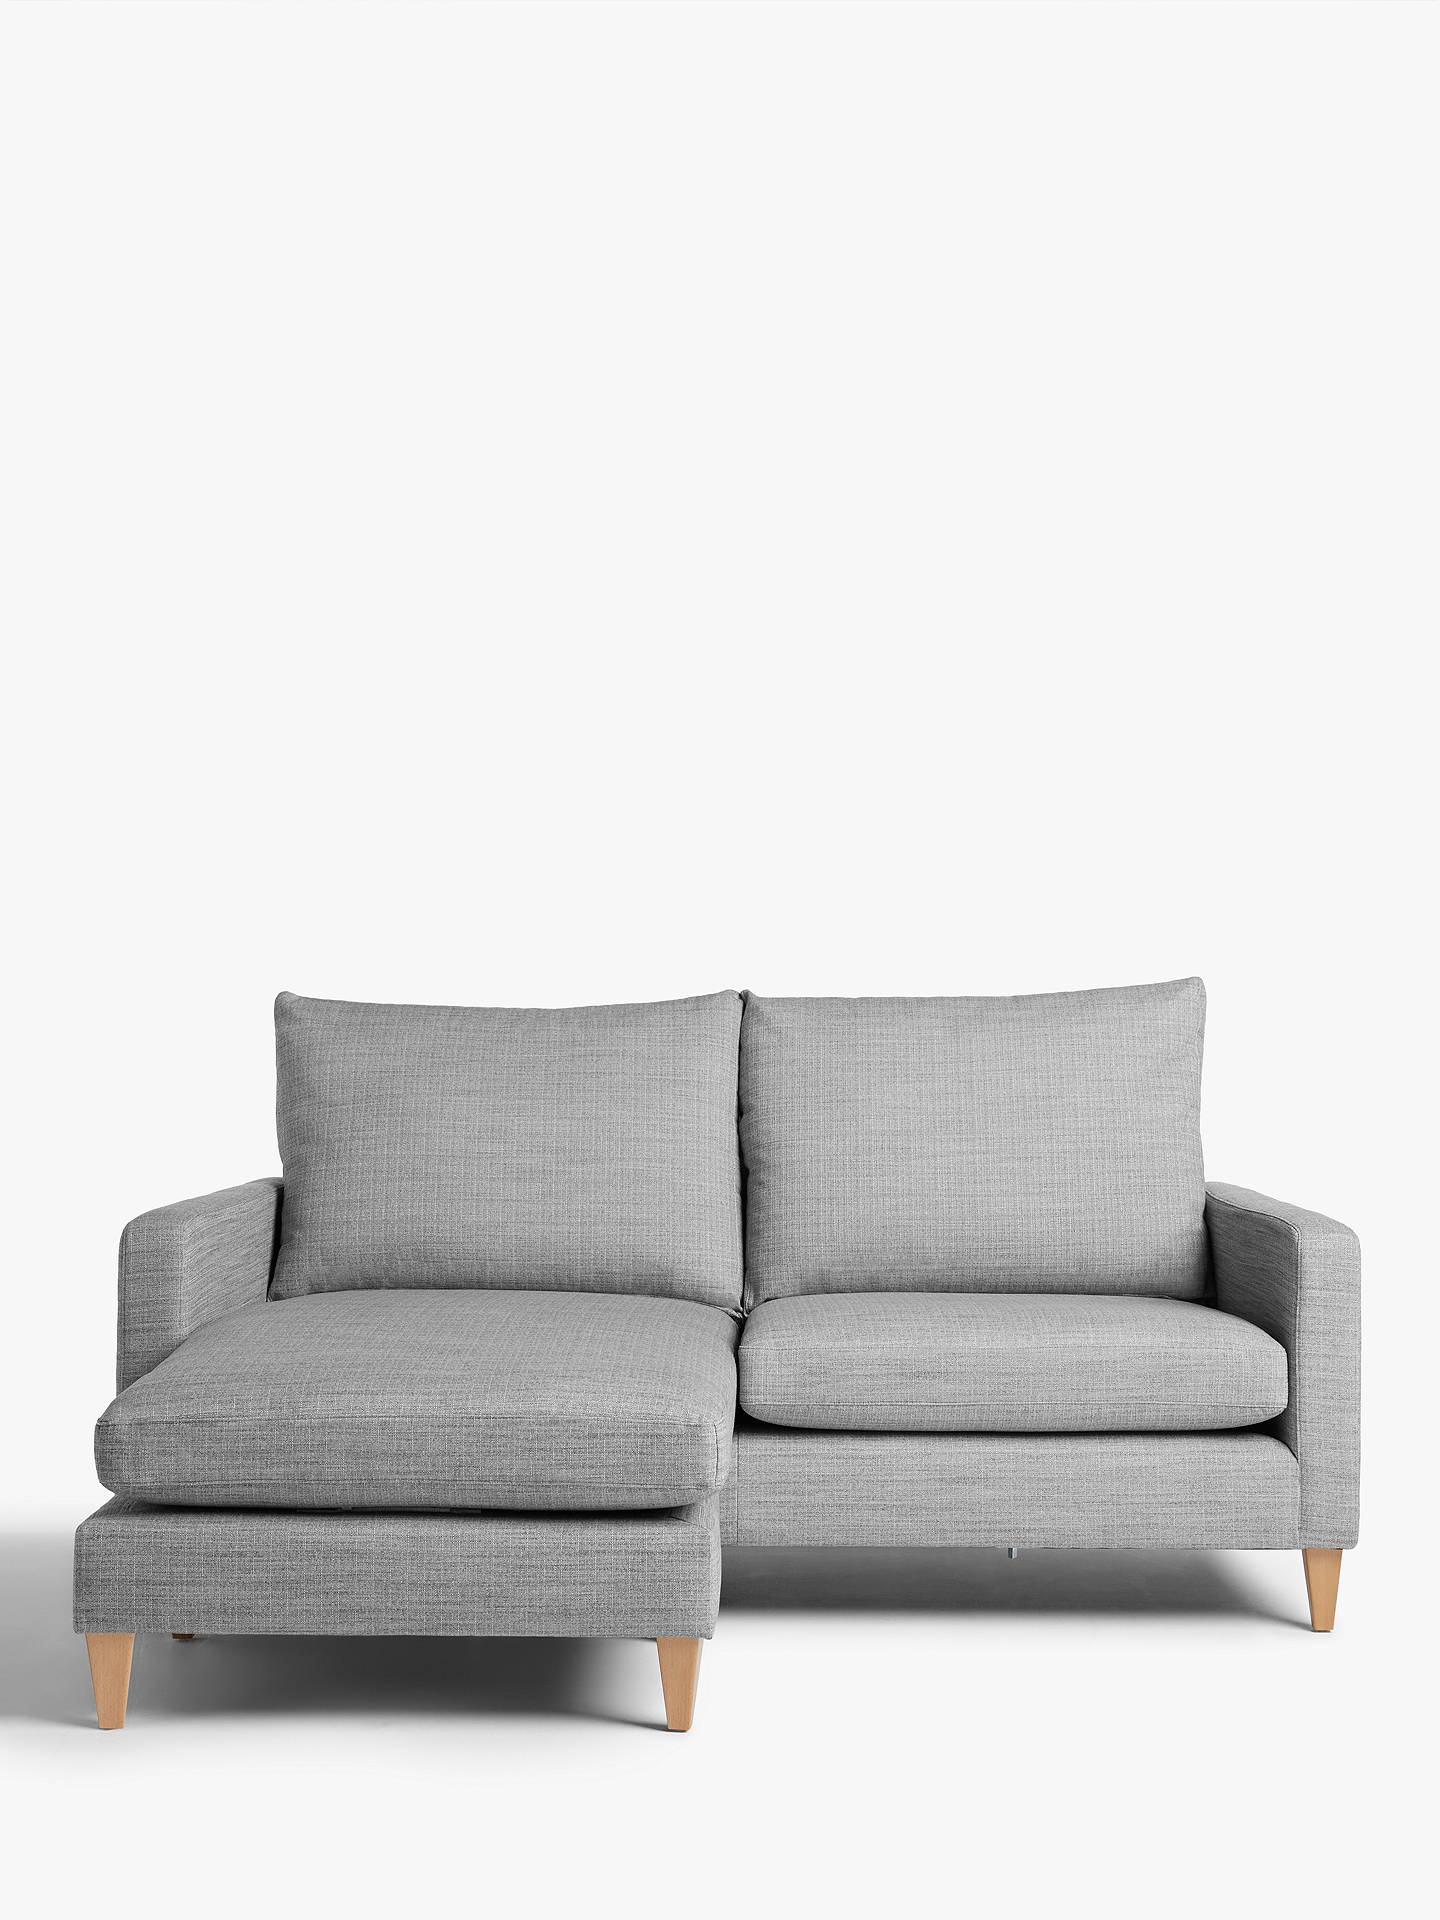 8621ef3a3e86 Buy John Lewis & Partners Bailey High Back LHF Chaise End Sofa Online at  johnlewis.